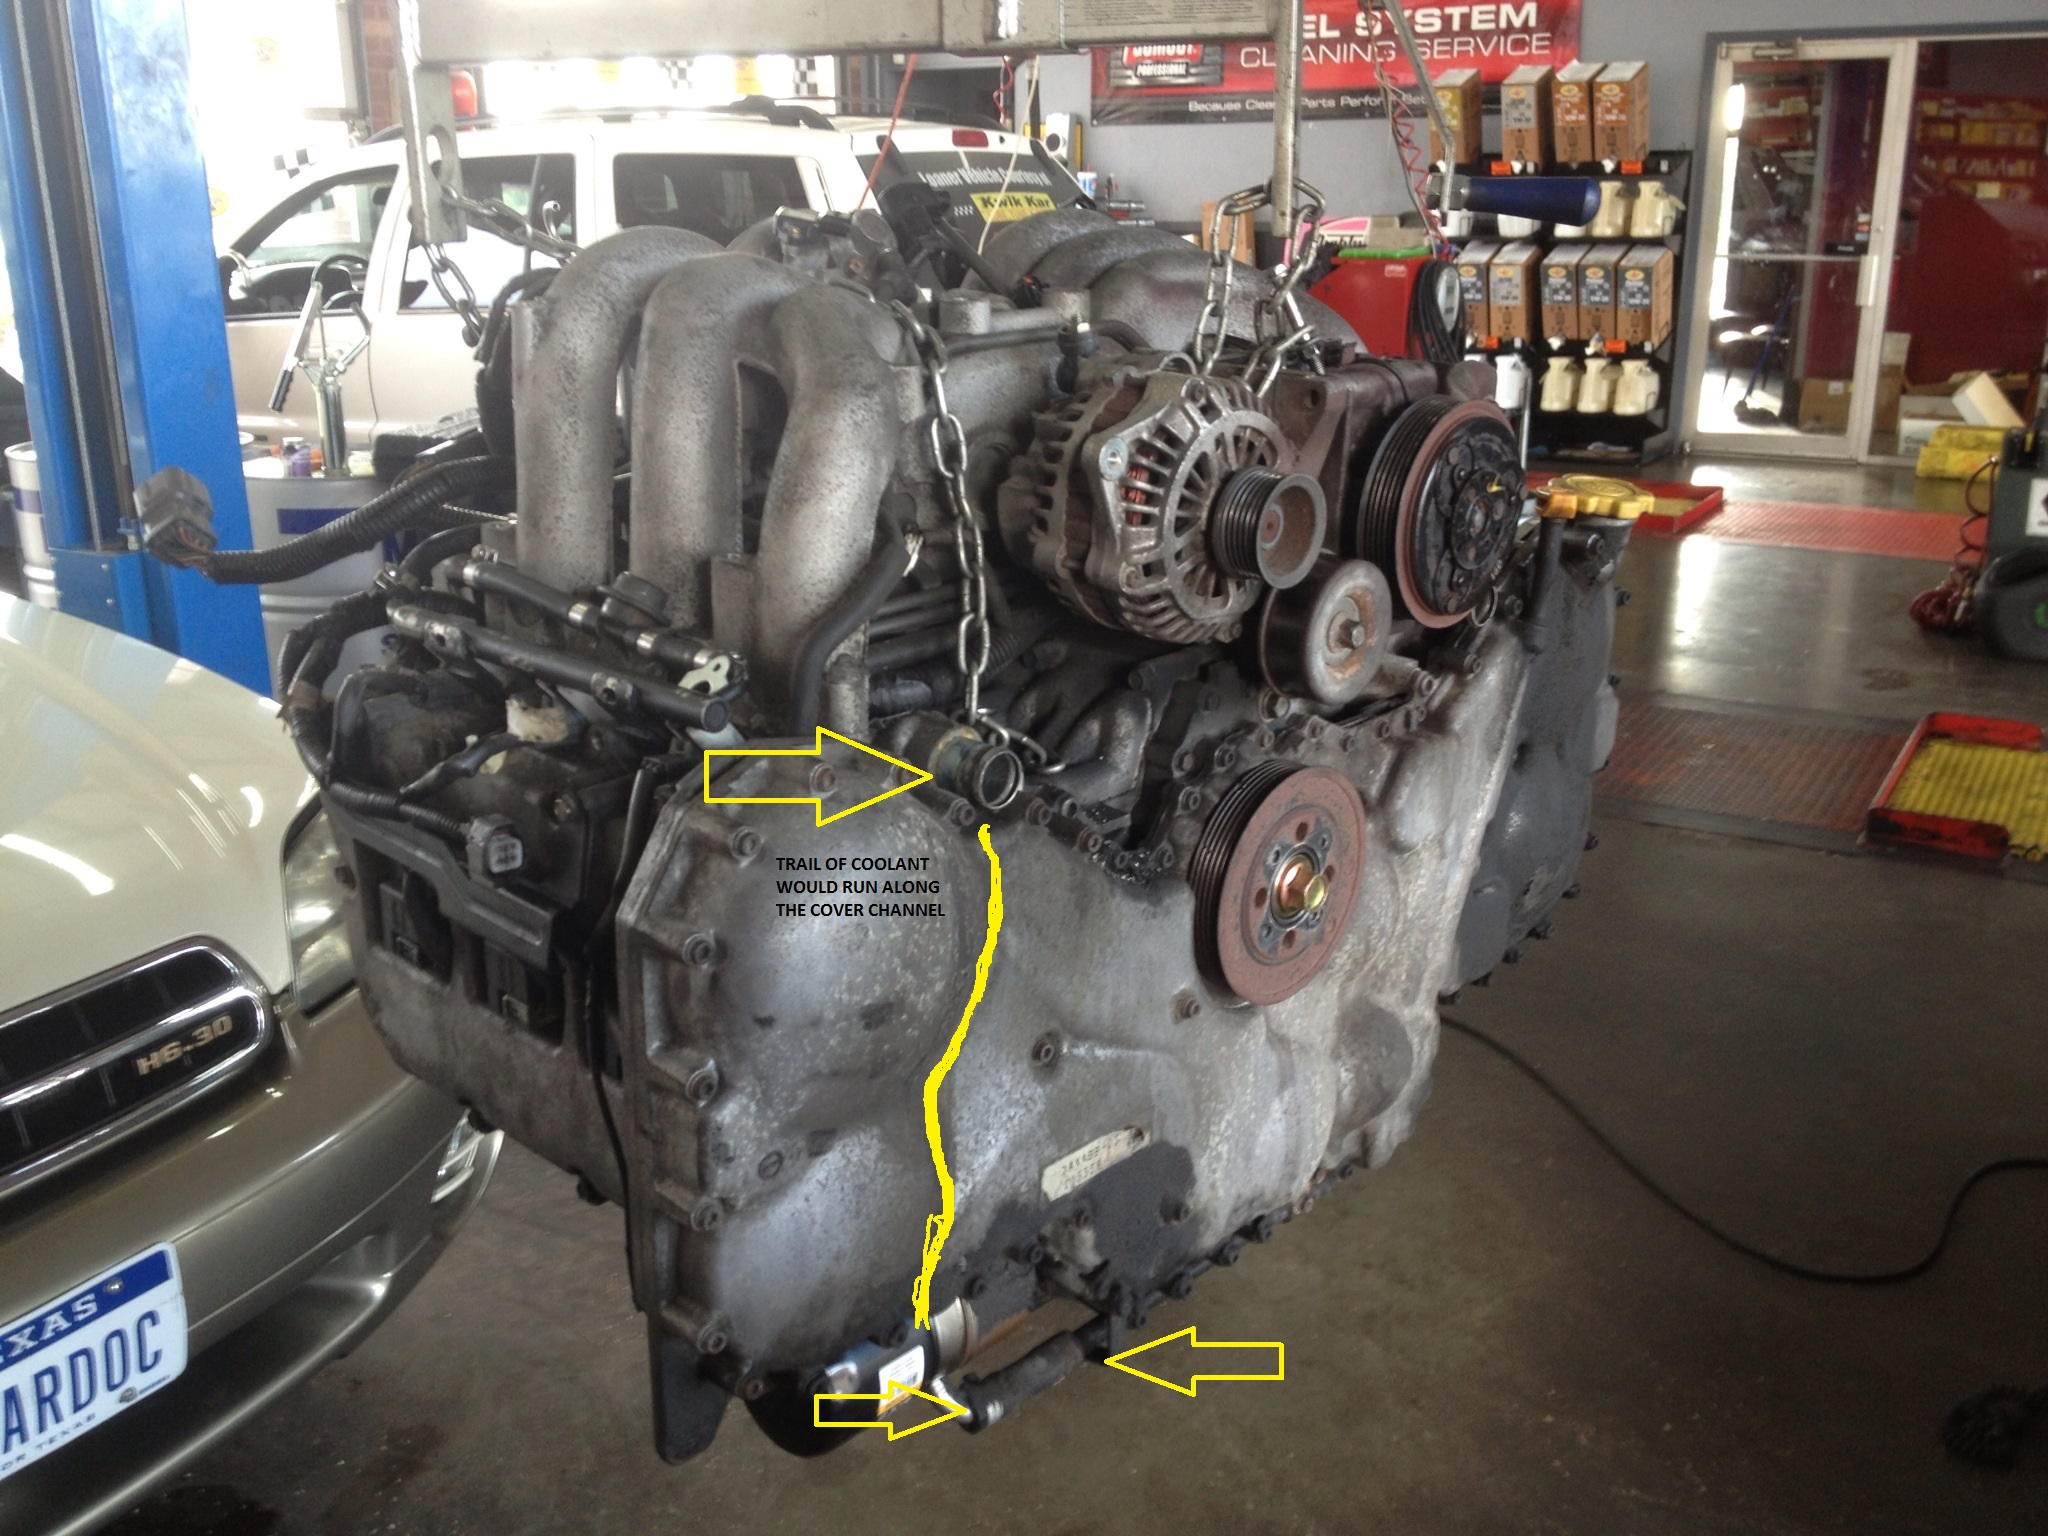 03 Outback H6 Water Pump Issue Subaru Cooling Diagram Forums